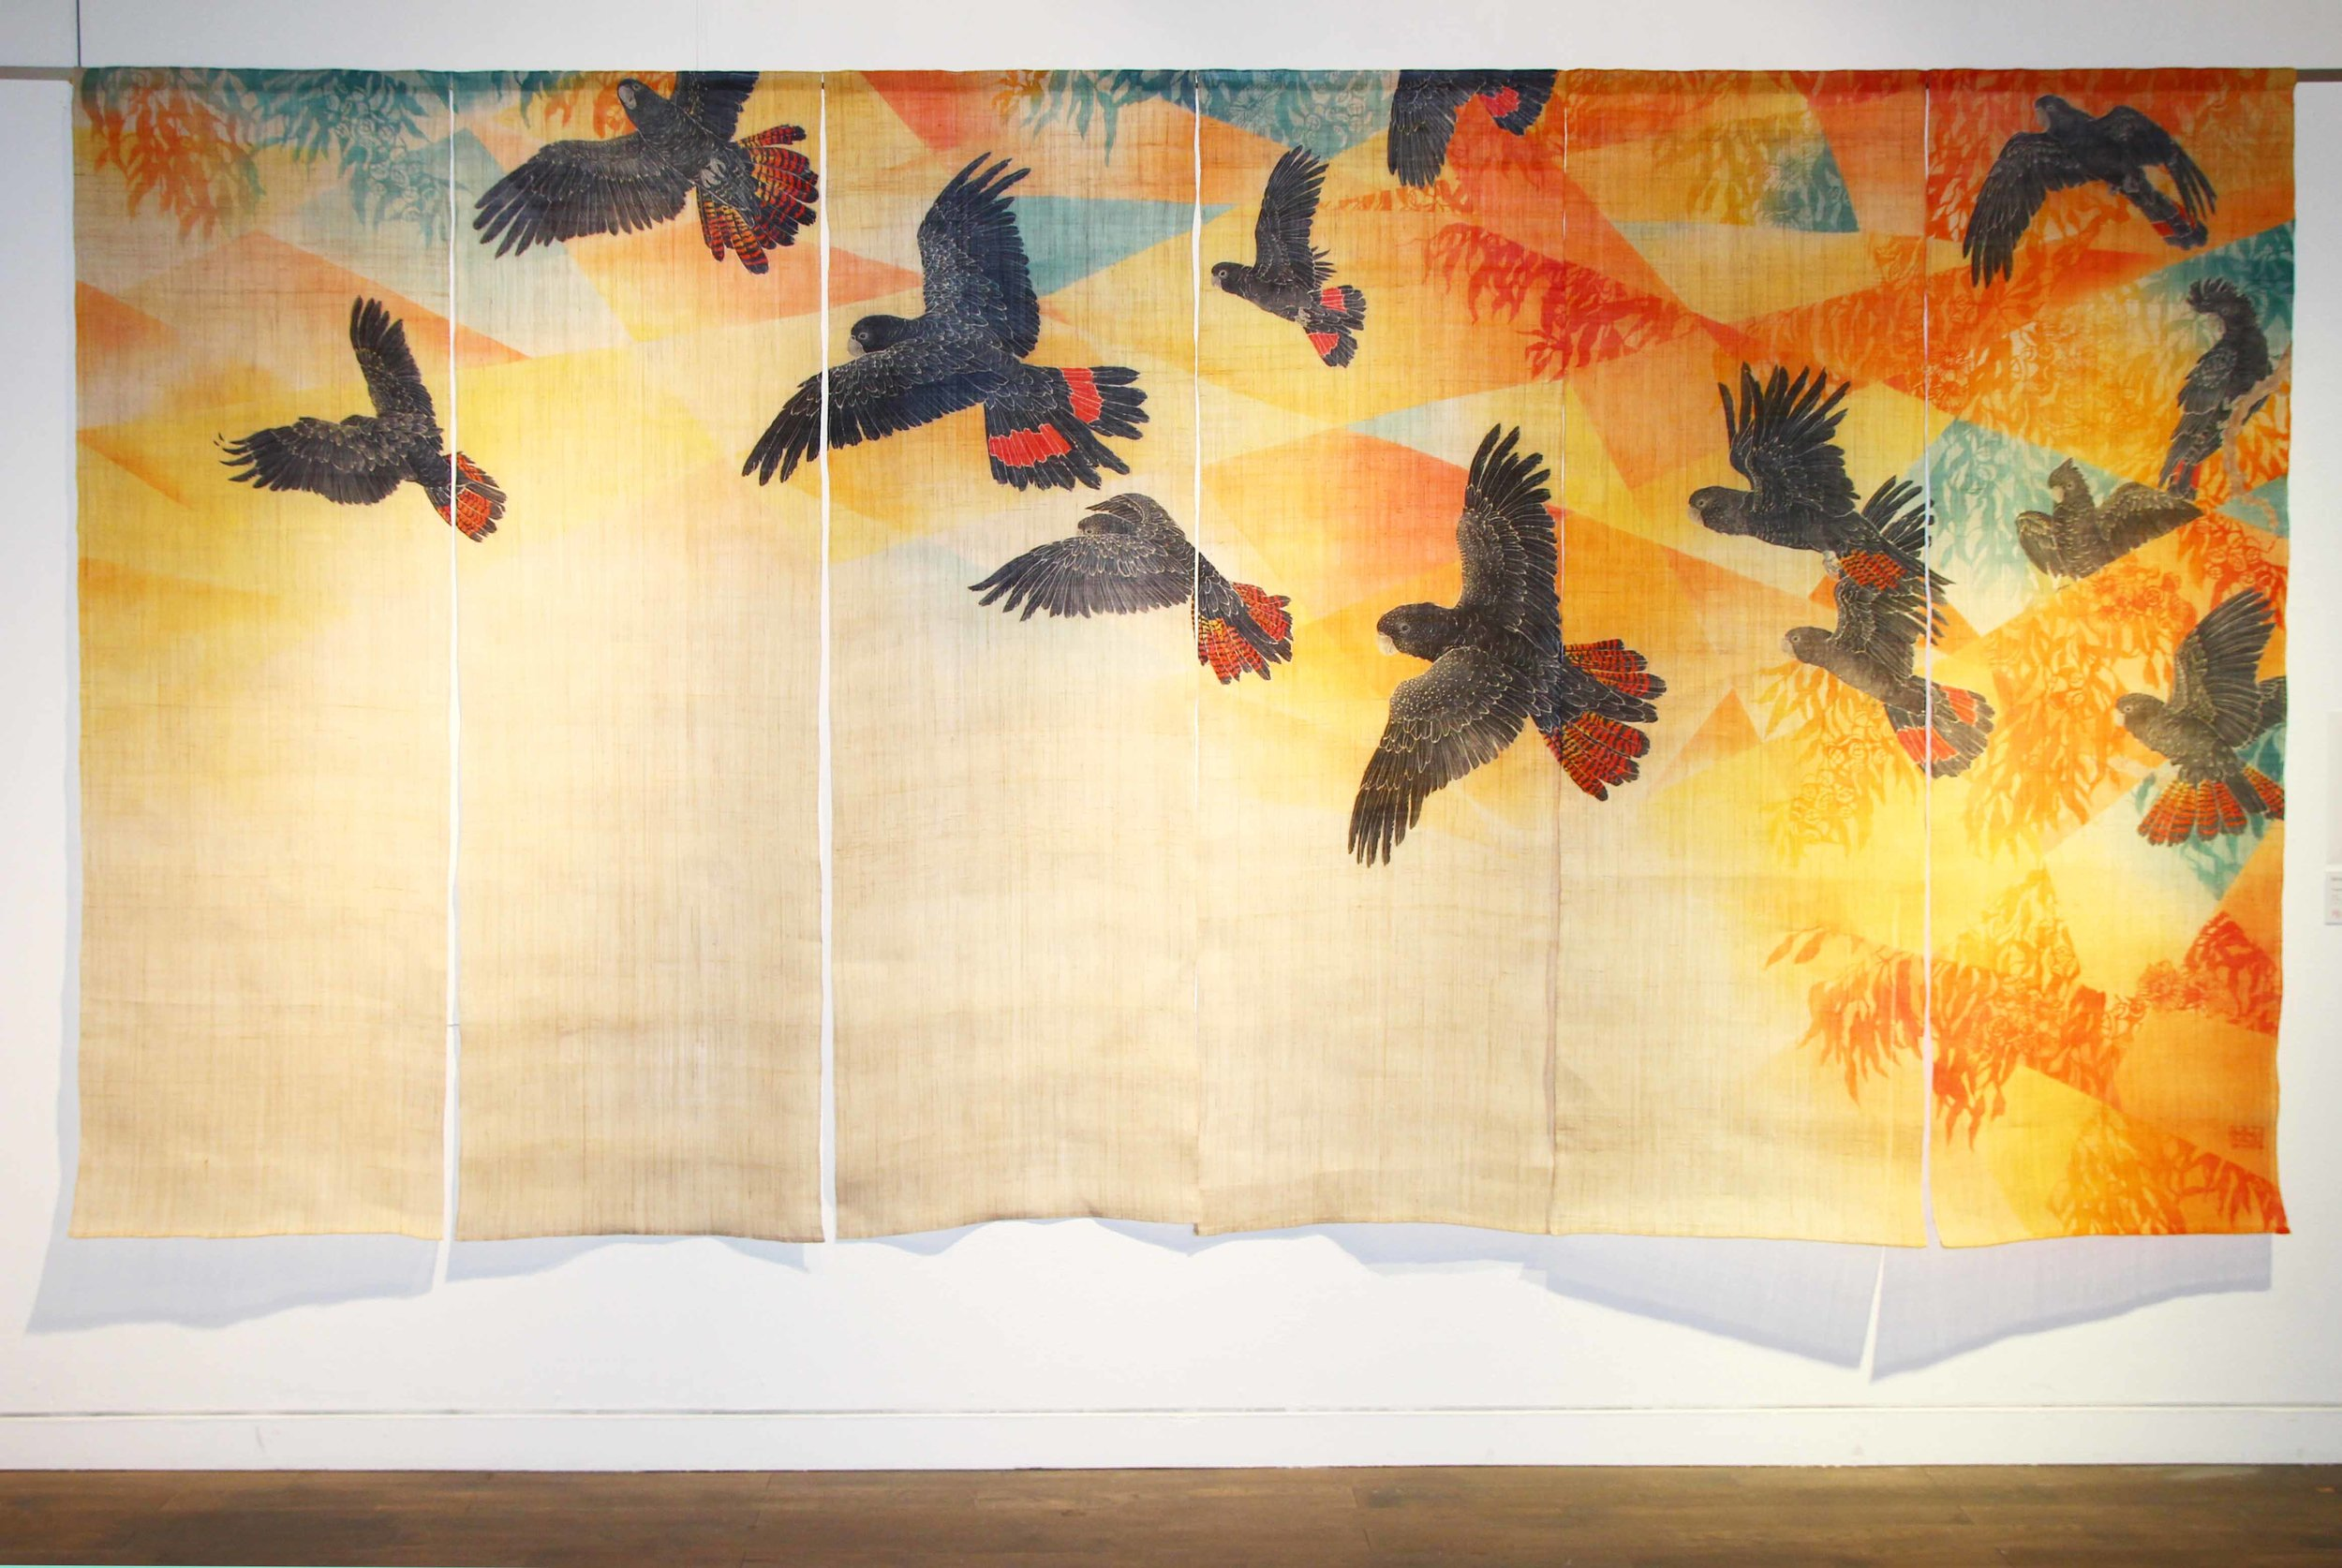 Fragmentation, 2014. Yuzen and Katazome on Linen. Red-tailed Black Cockatoos fly amongst their slowly fragmented Eucalypt habitat